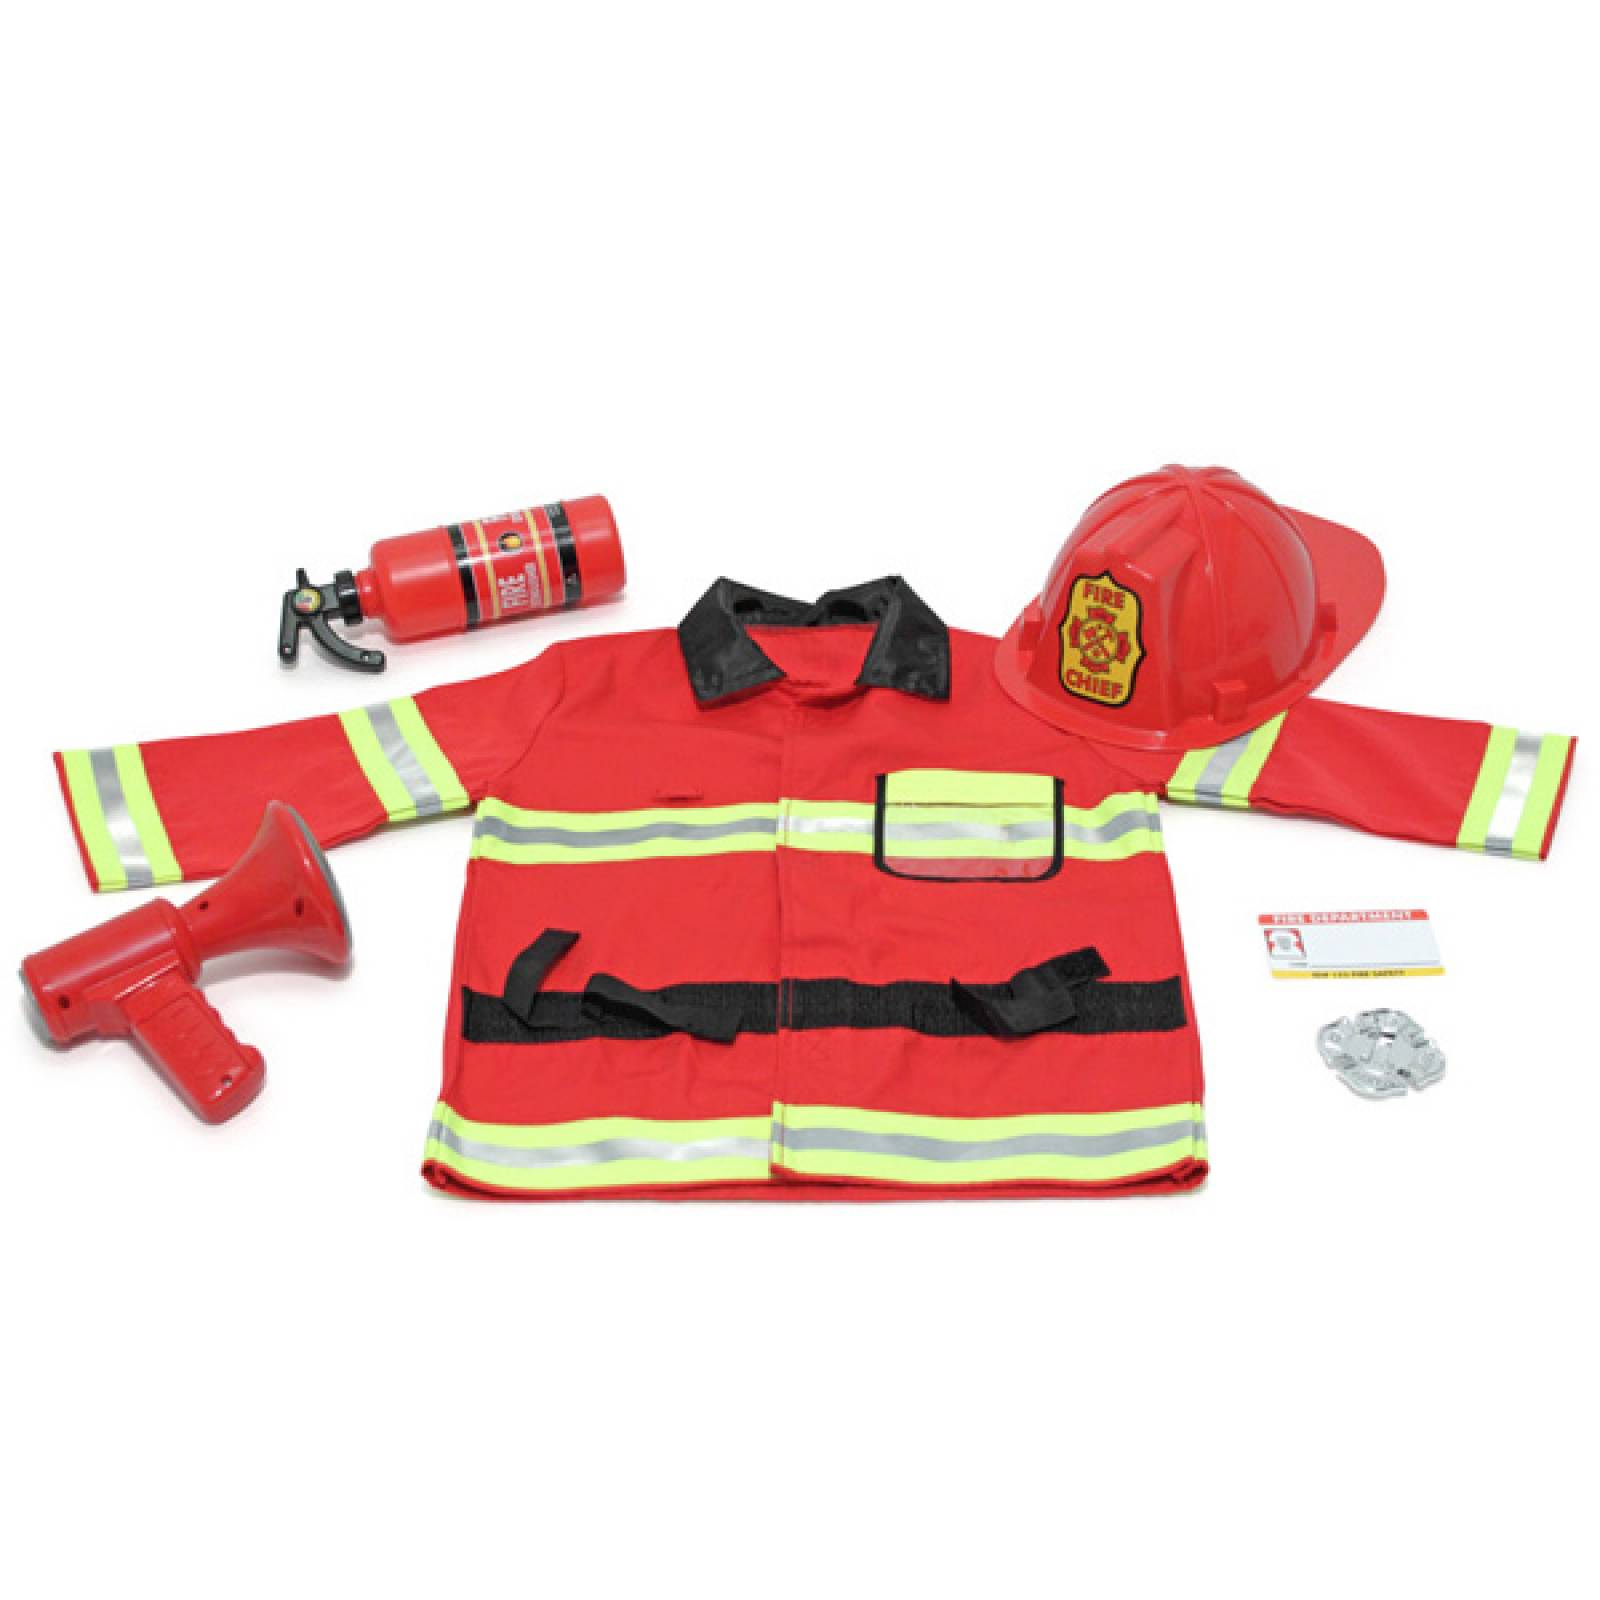 Fancy Dress Role Play Costume Set - Fire Fighter